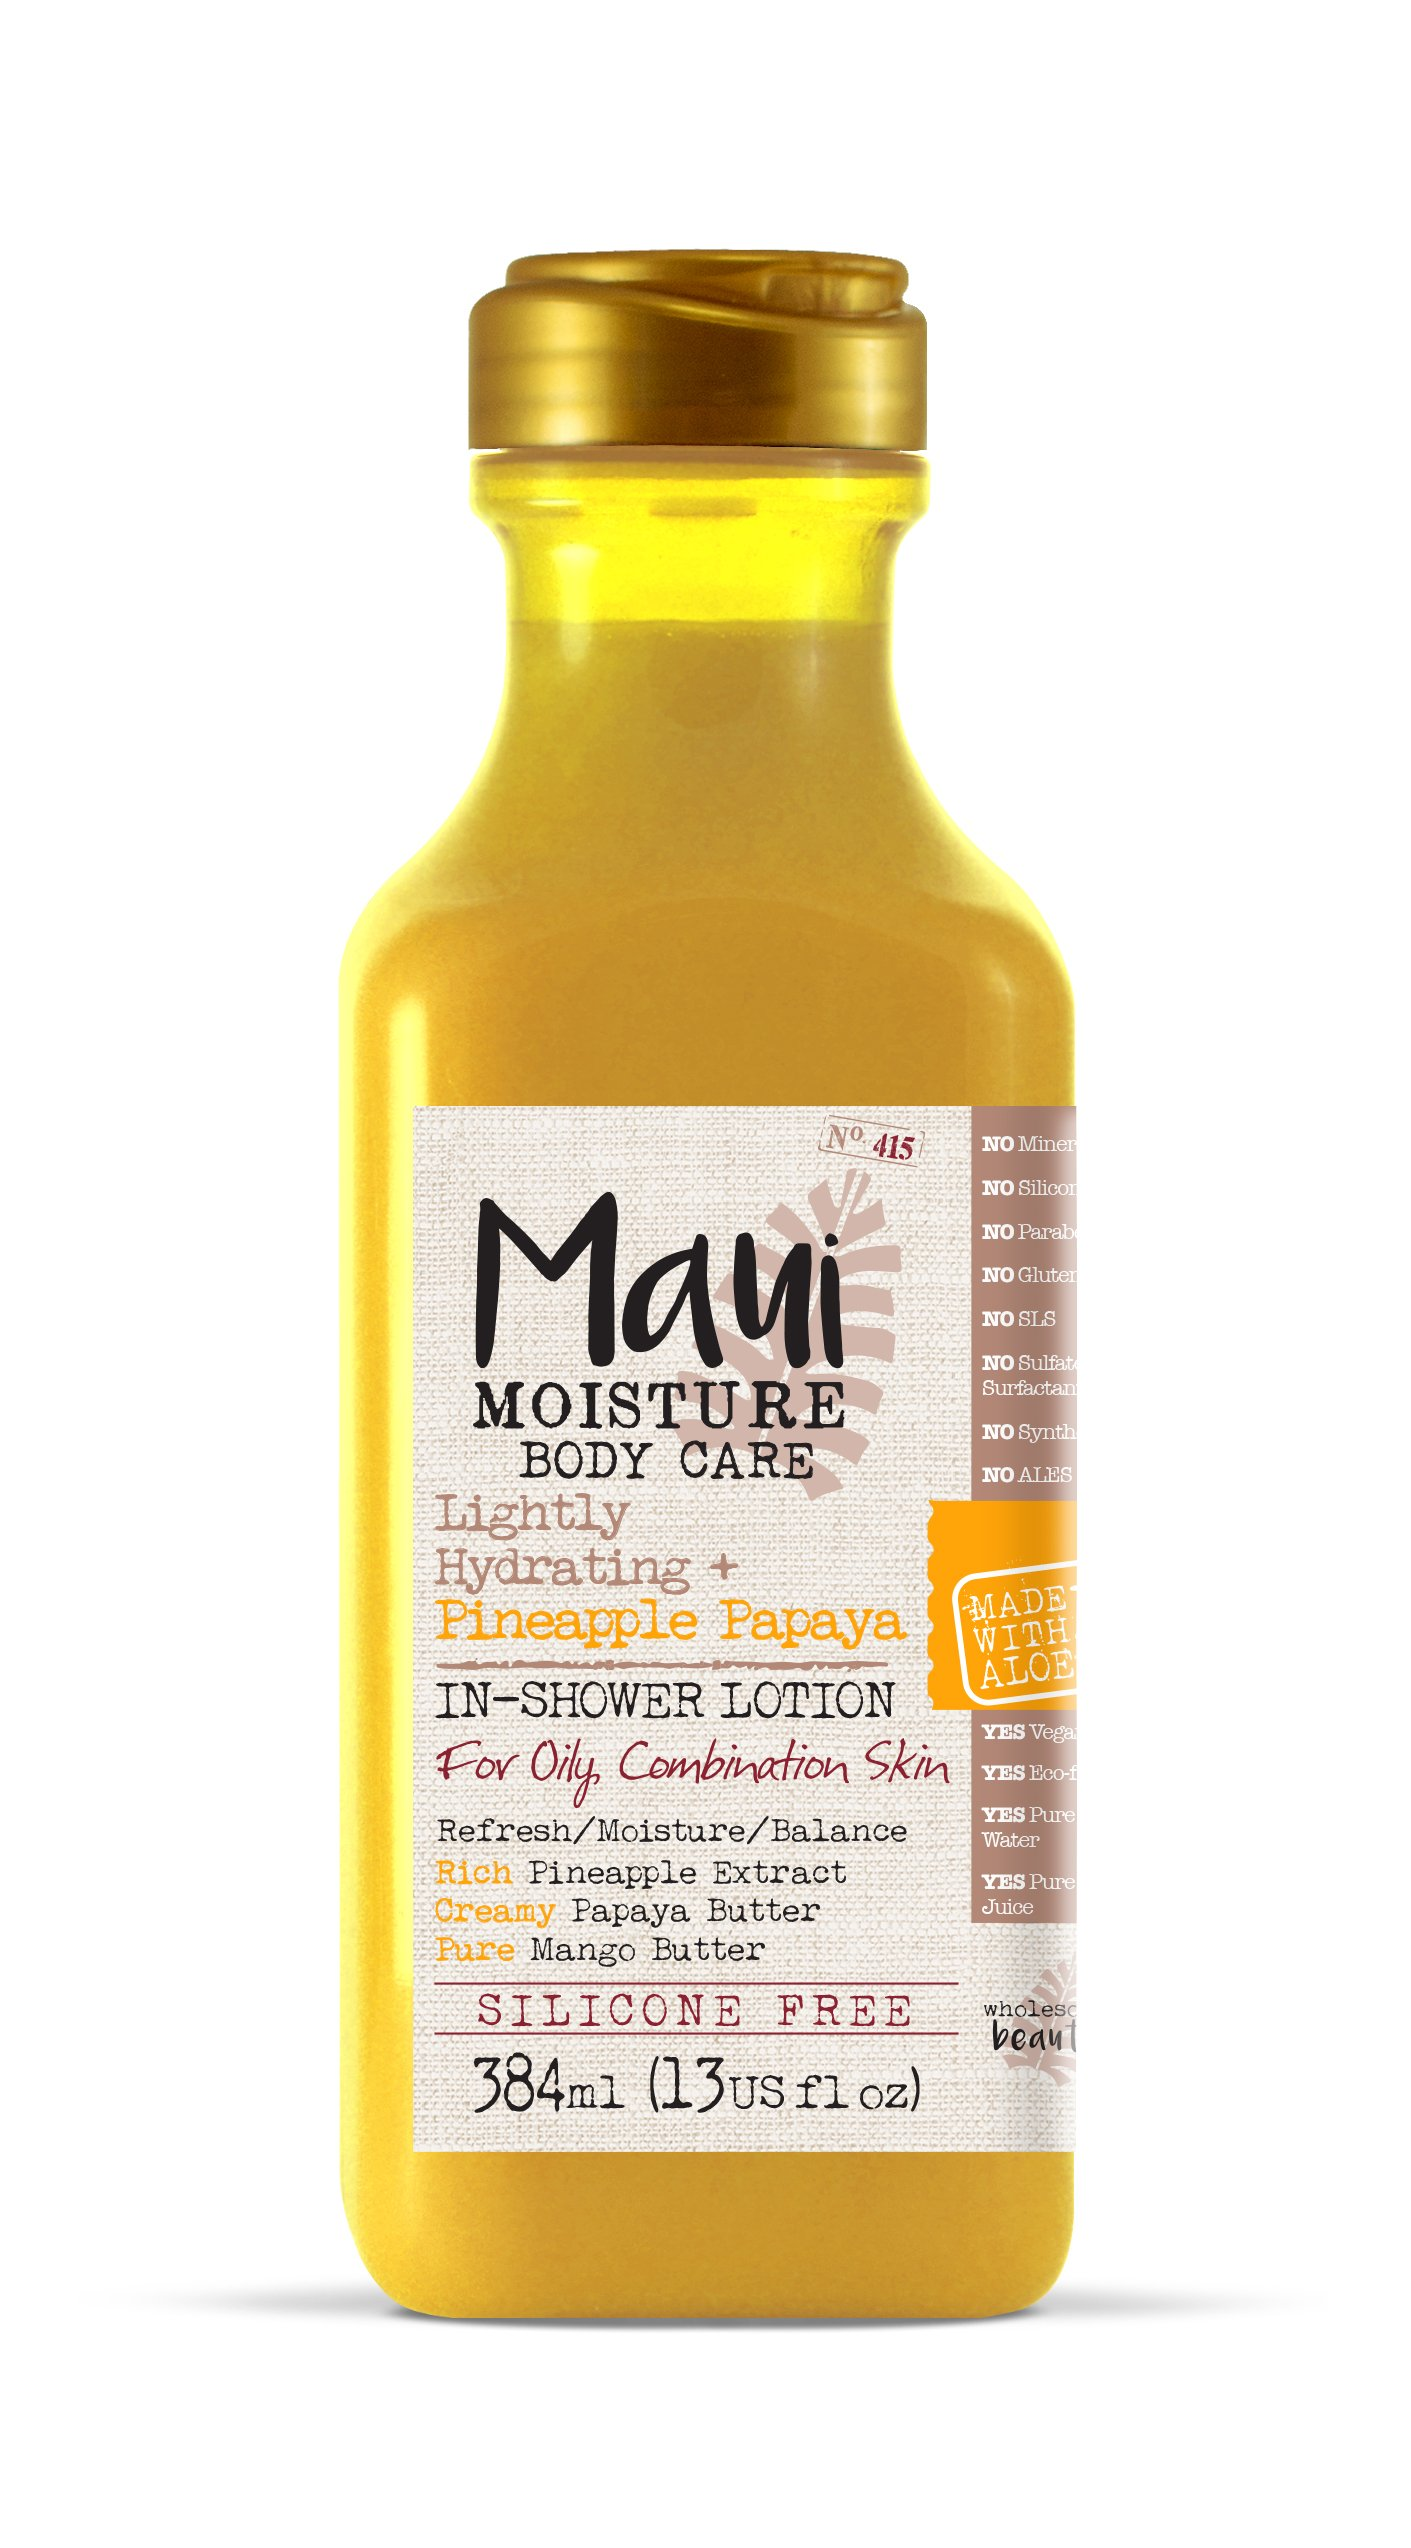 Maui Moisture Pineapple Papaya Creamy In-shower Body Lotion 13 Ounce Moisturizing Body In-Shower Body Lotion for Oily Skin Normal Skin Combination Skin, with Aloe Vera, Silicone Free by OGX